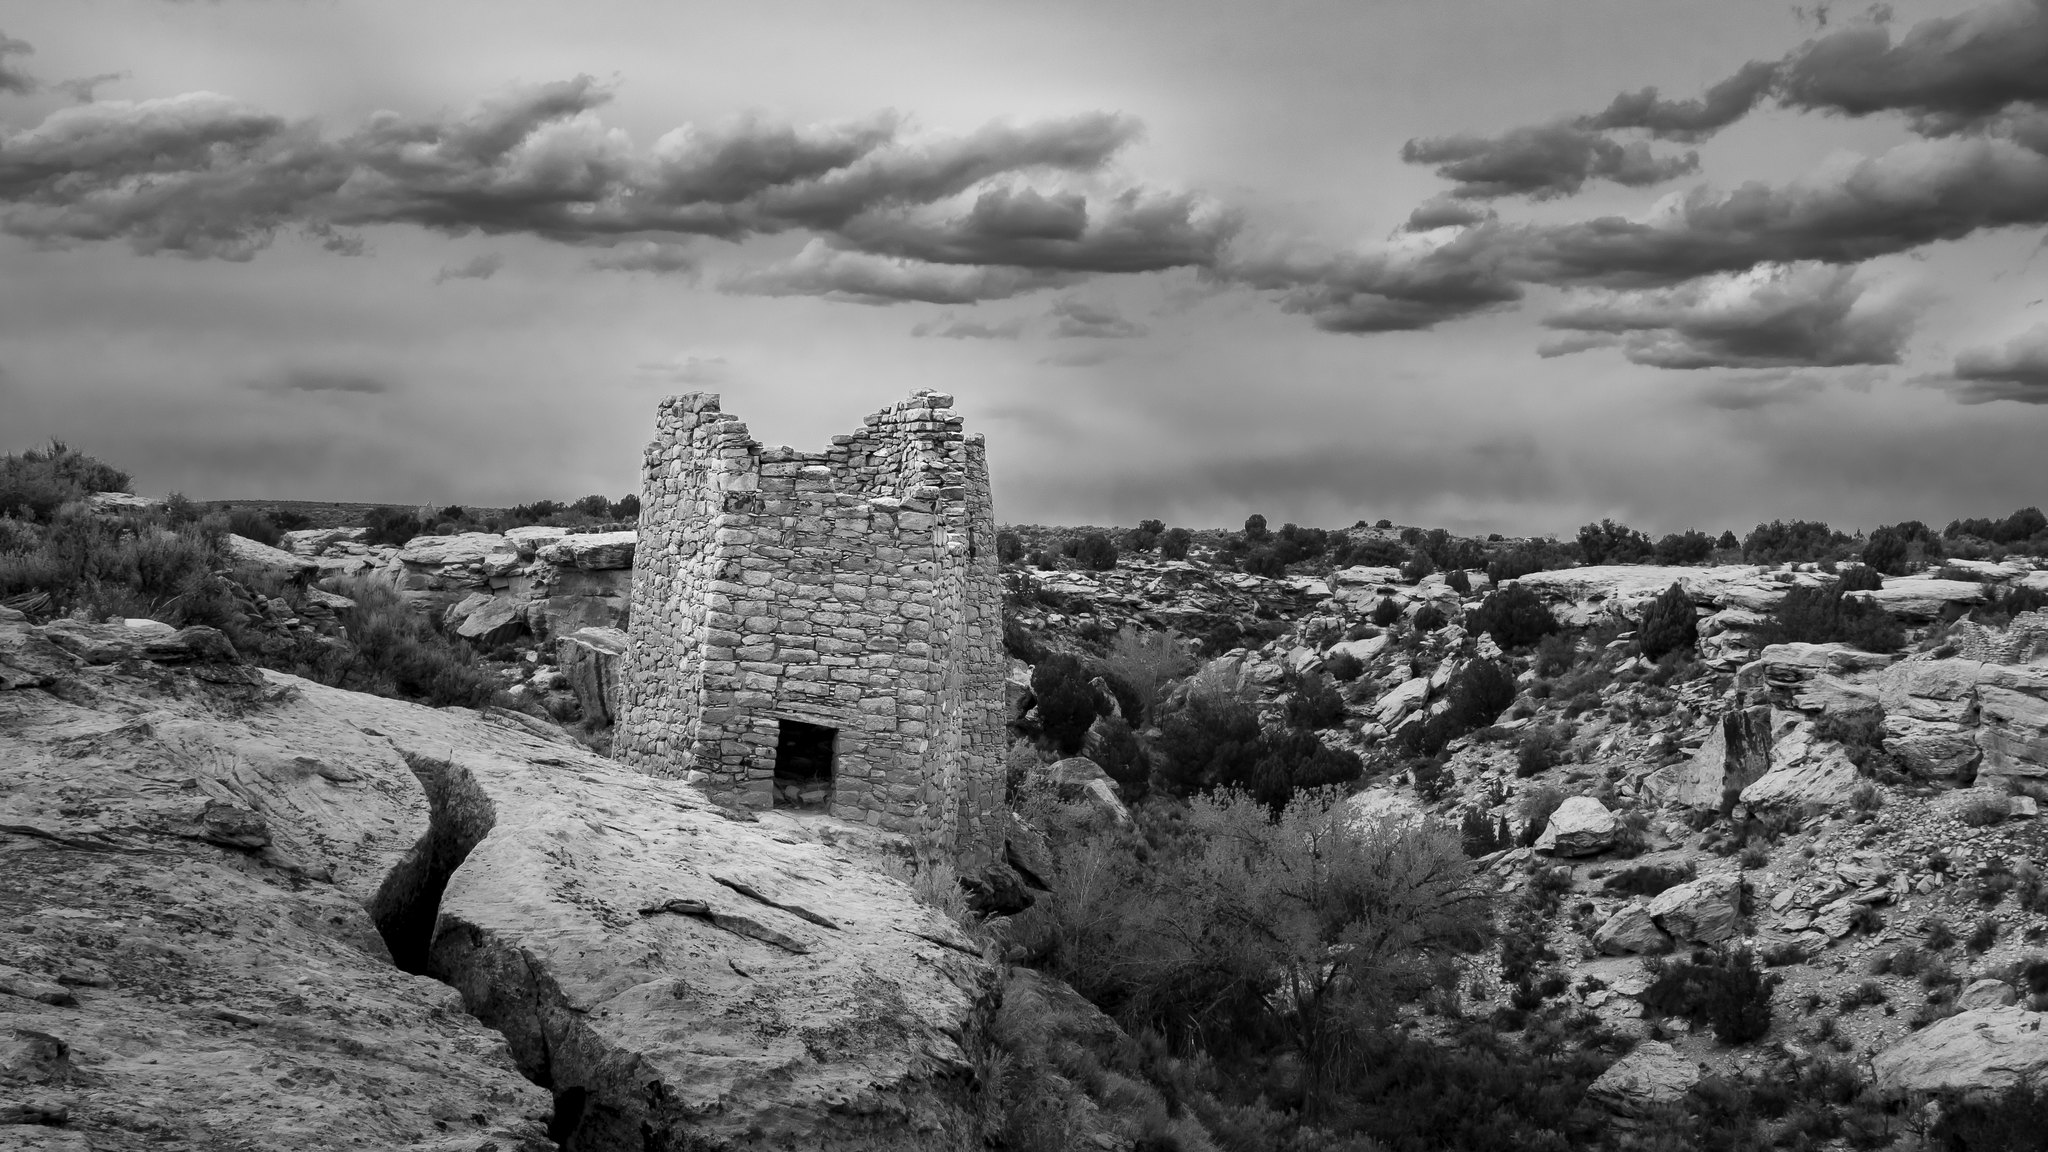 Hovenweep National Monument Rechercher dans Google Maps - Utah - [USA]